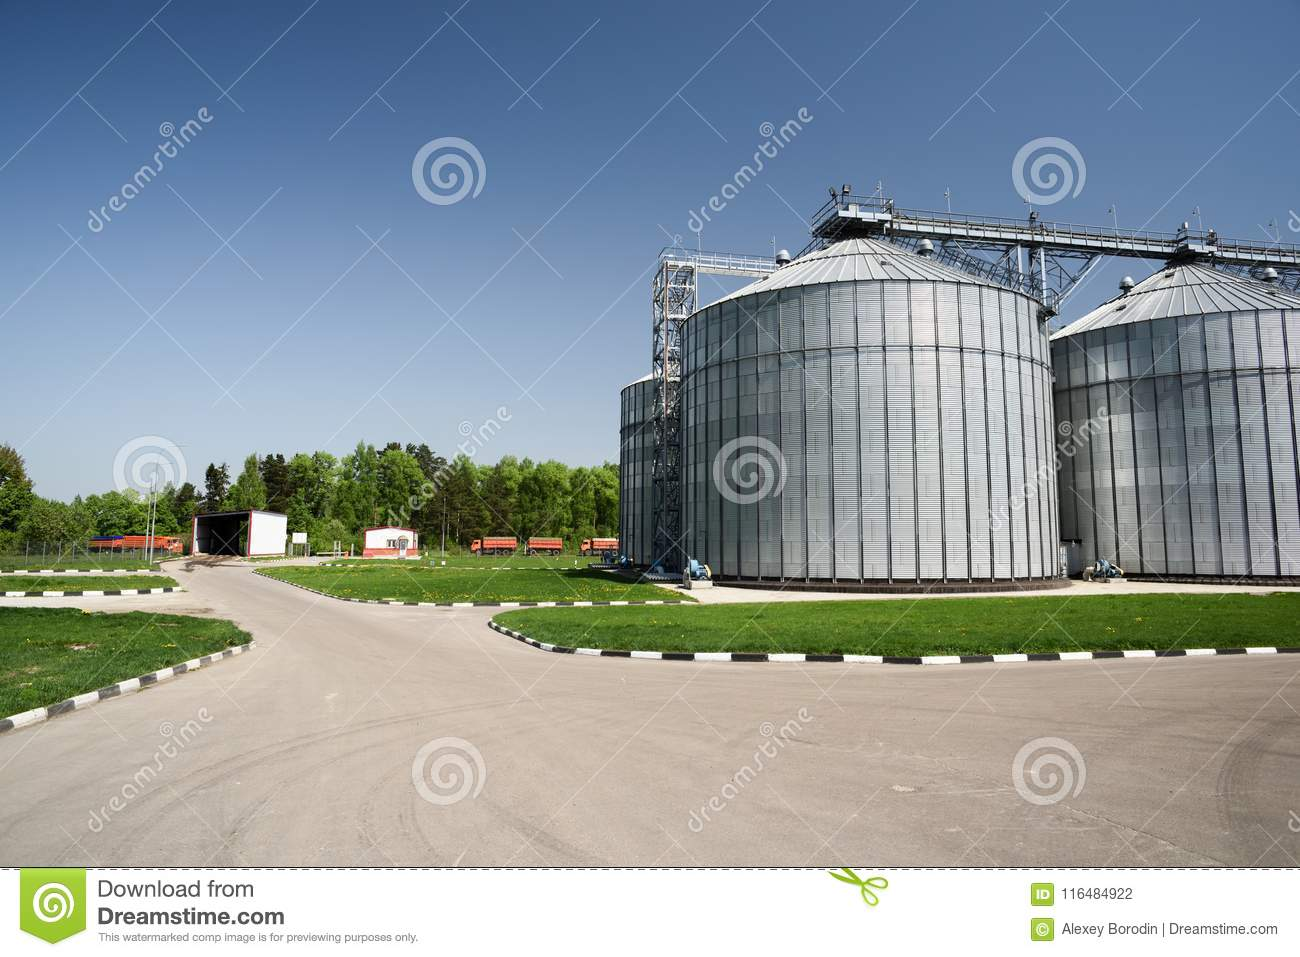 Modern Animal Feed Factory Granary. Big Metal Storage Containers For Grain